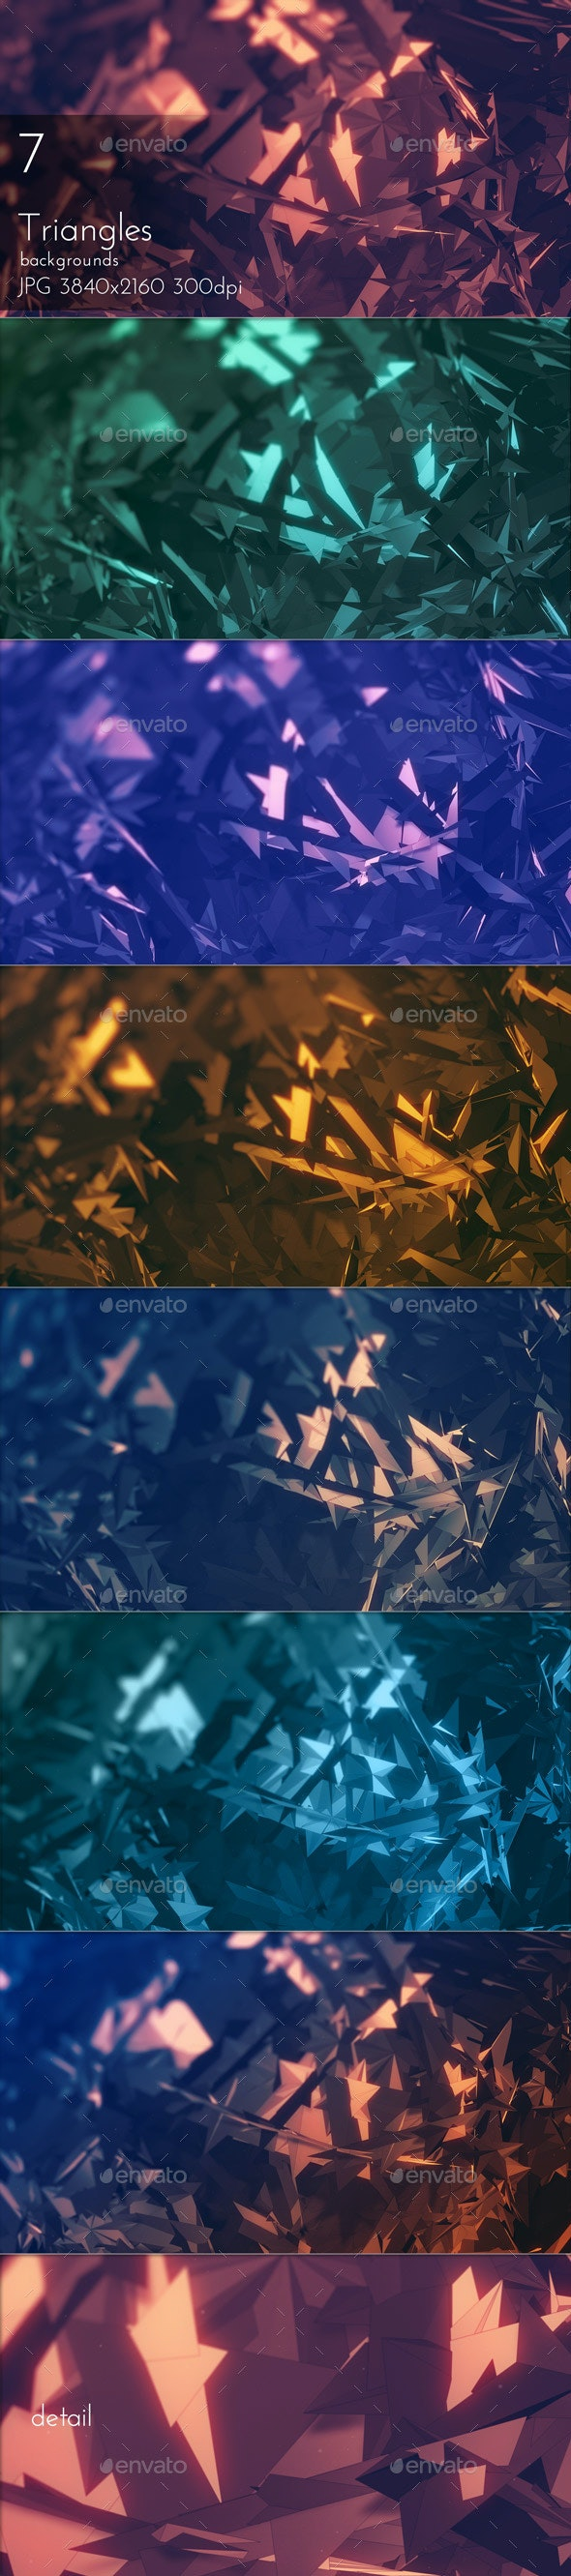 Triangular Polygons Abstract Backgrounds - Tech / Futuristic Backgrounds